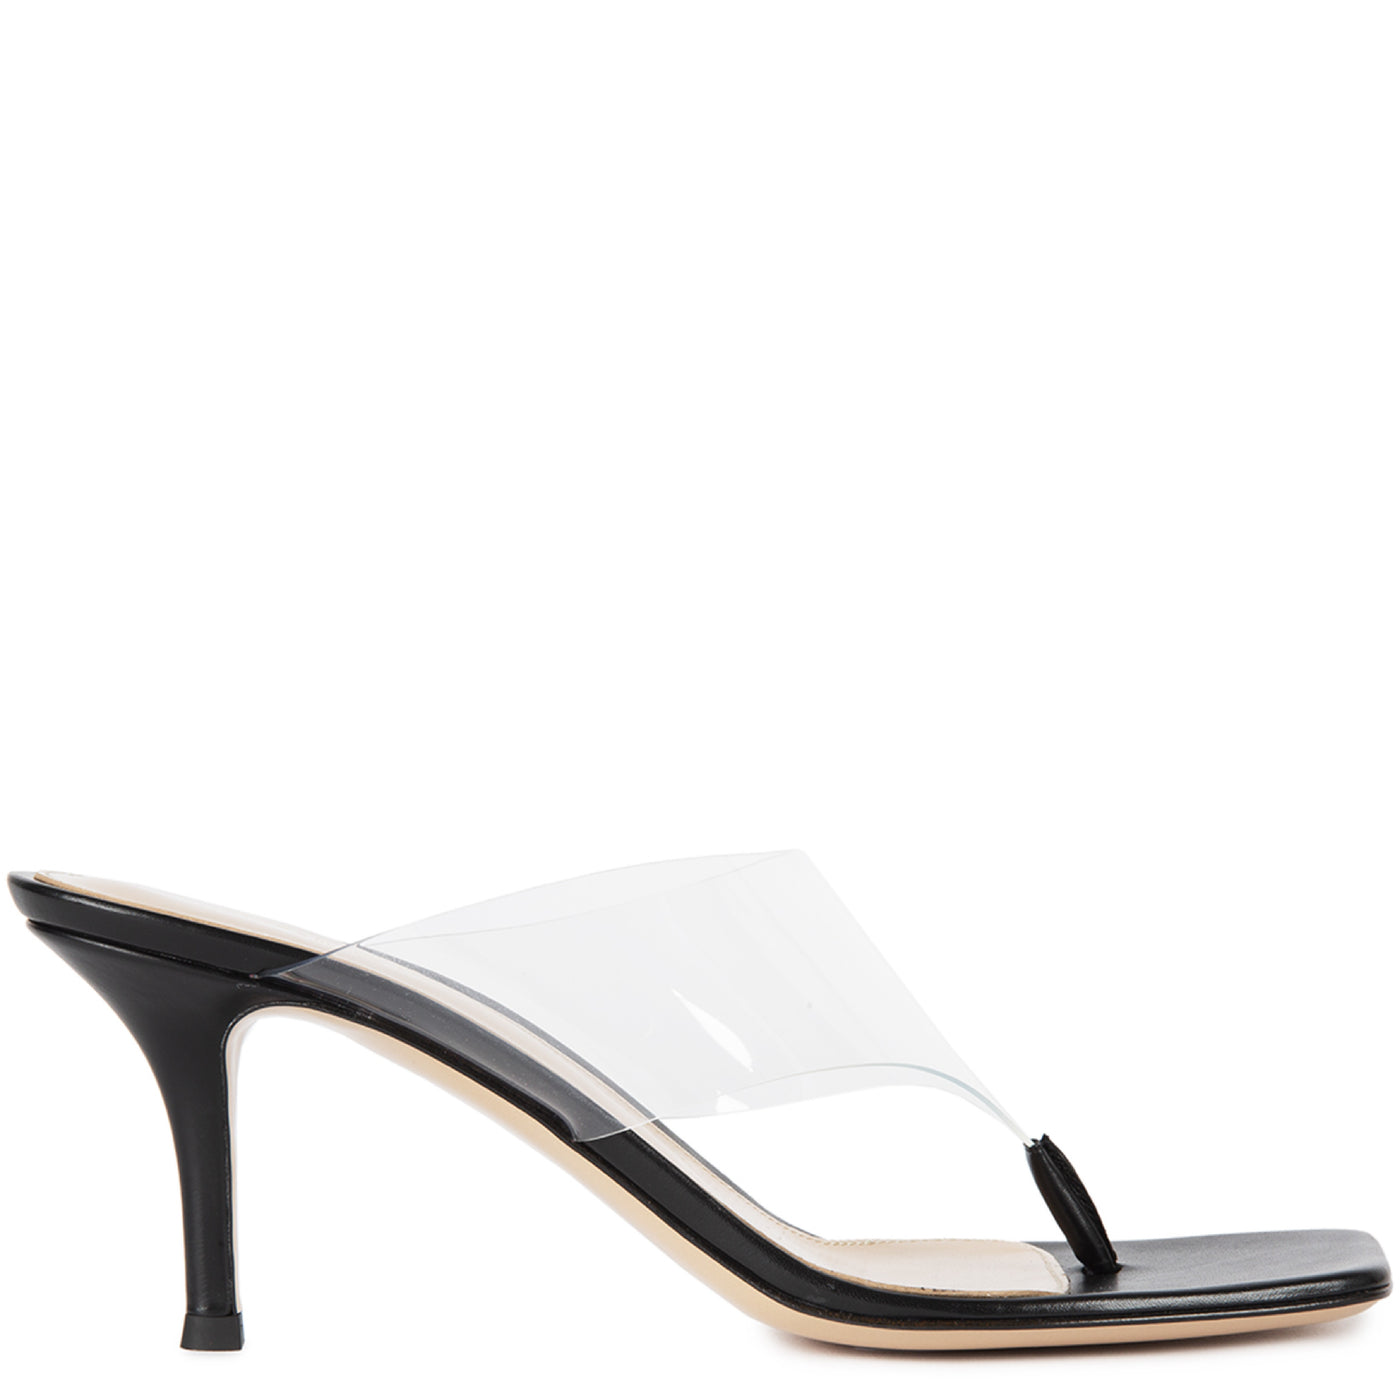 Load image into Gallery viewer, GIANVITO ROSSI PVC SANDALS BLACK